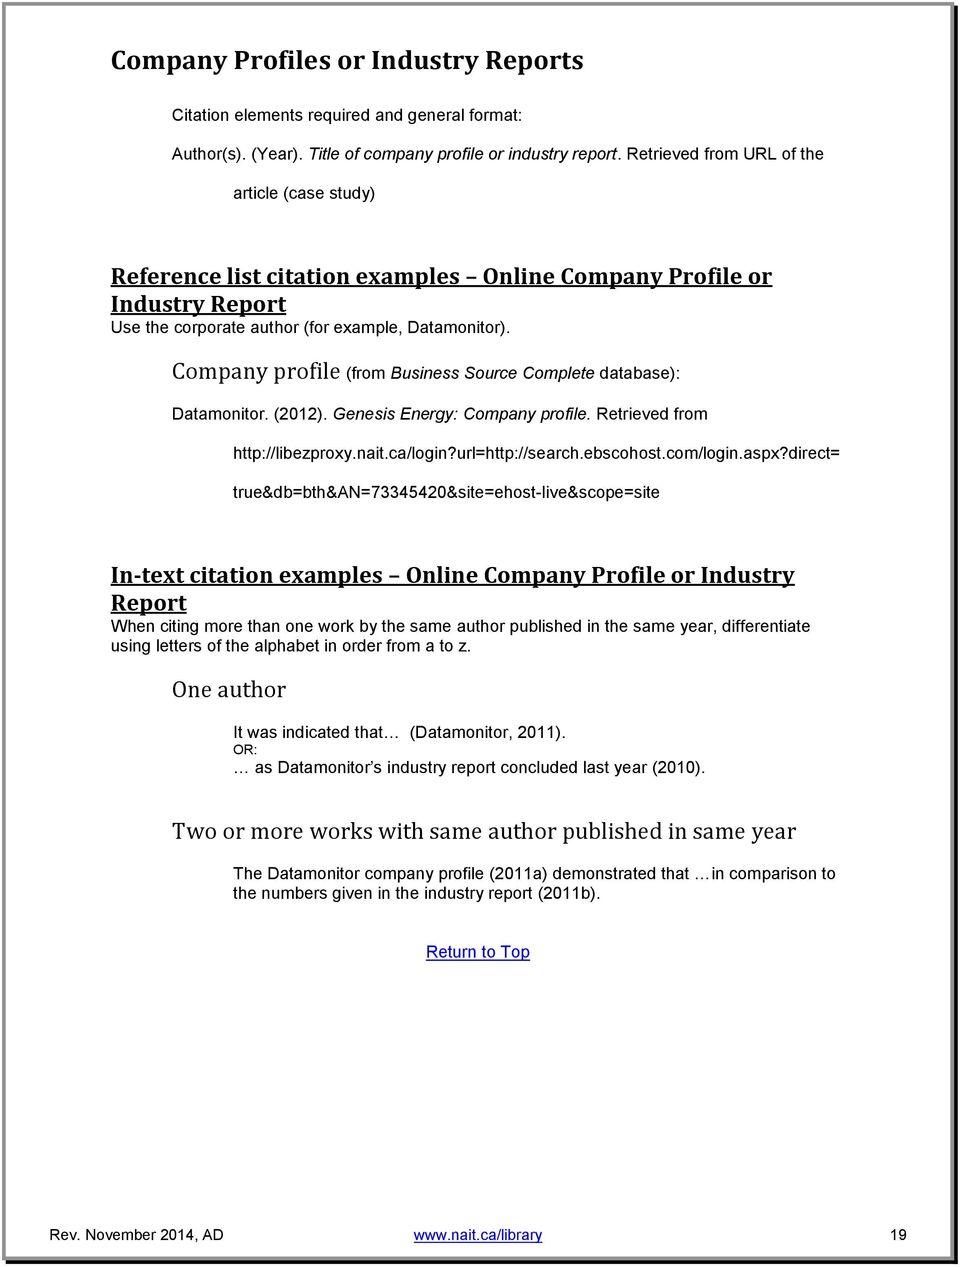 Company profile (from Business Source Complete database): Datamonitor. (2012). Genesis Energy: Company profile. Retrieved from http://libezproxy.nait.ca/login?url=http://search.ebscohost.com/login.